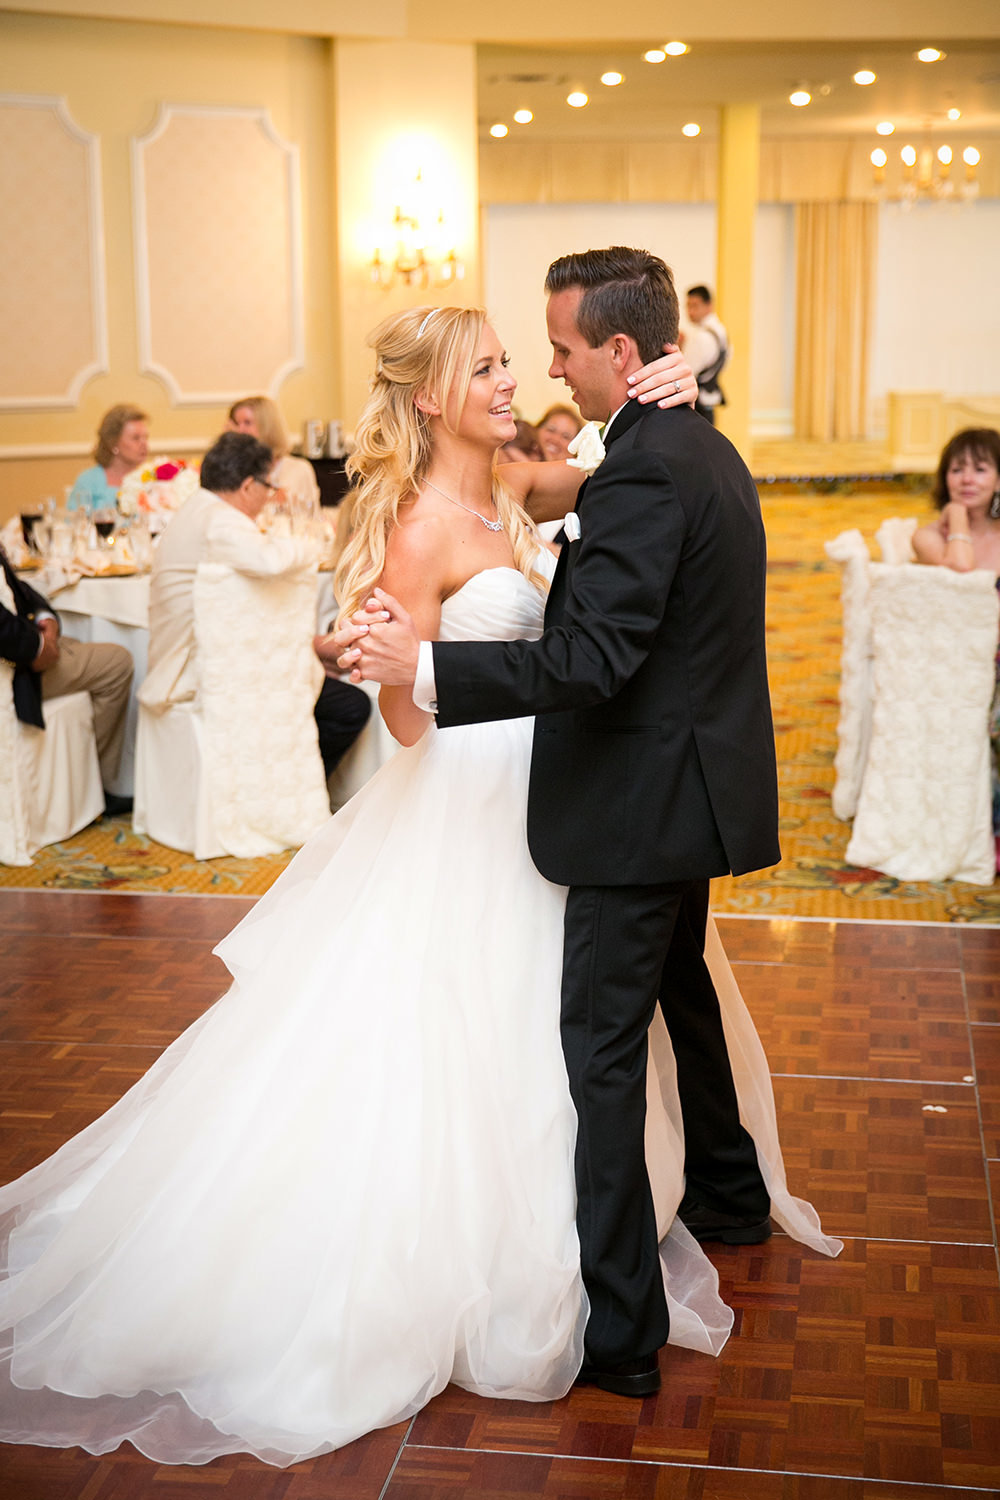 The first dance inside the elegant Hotel Del Coronado